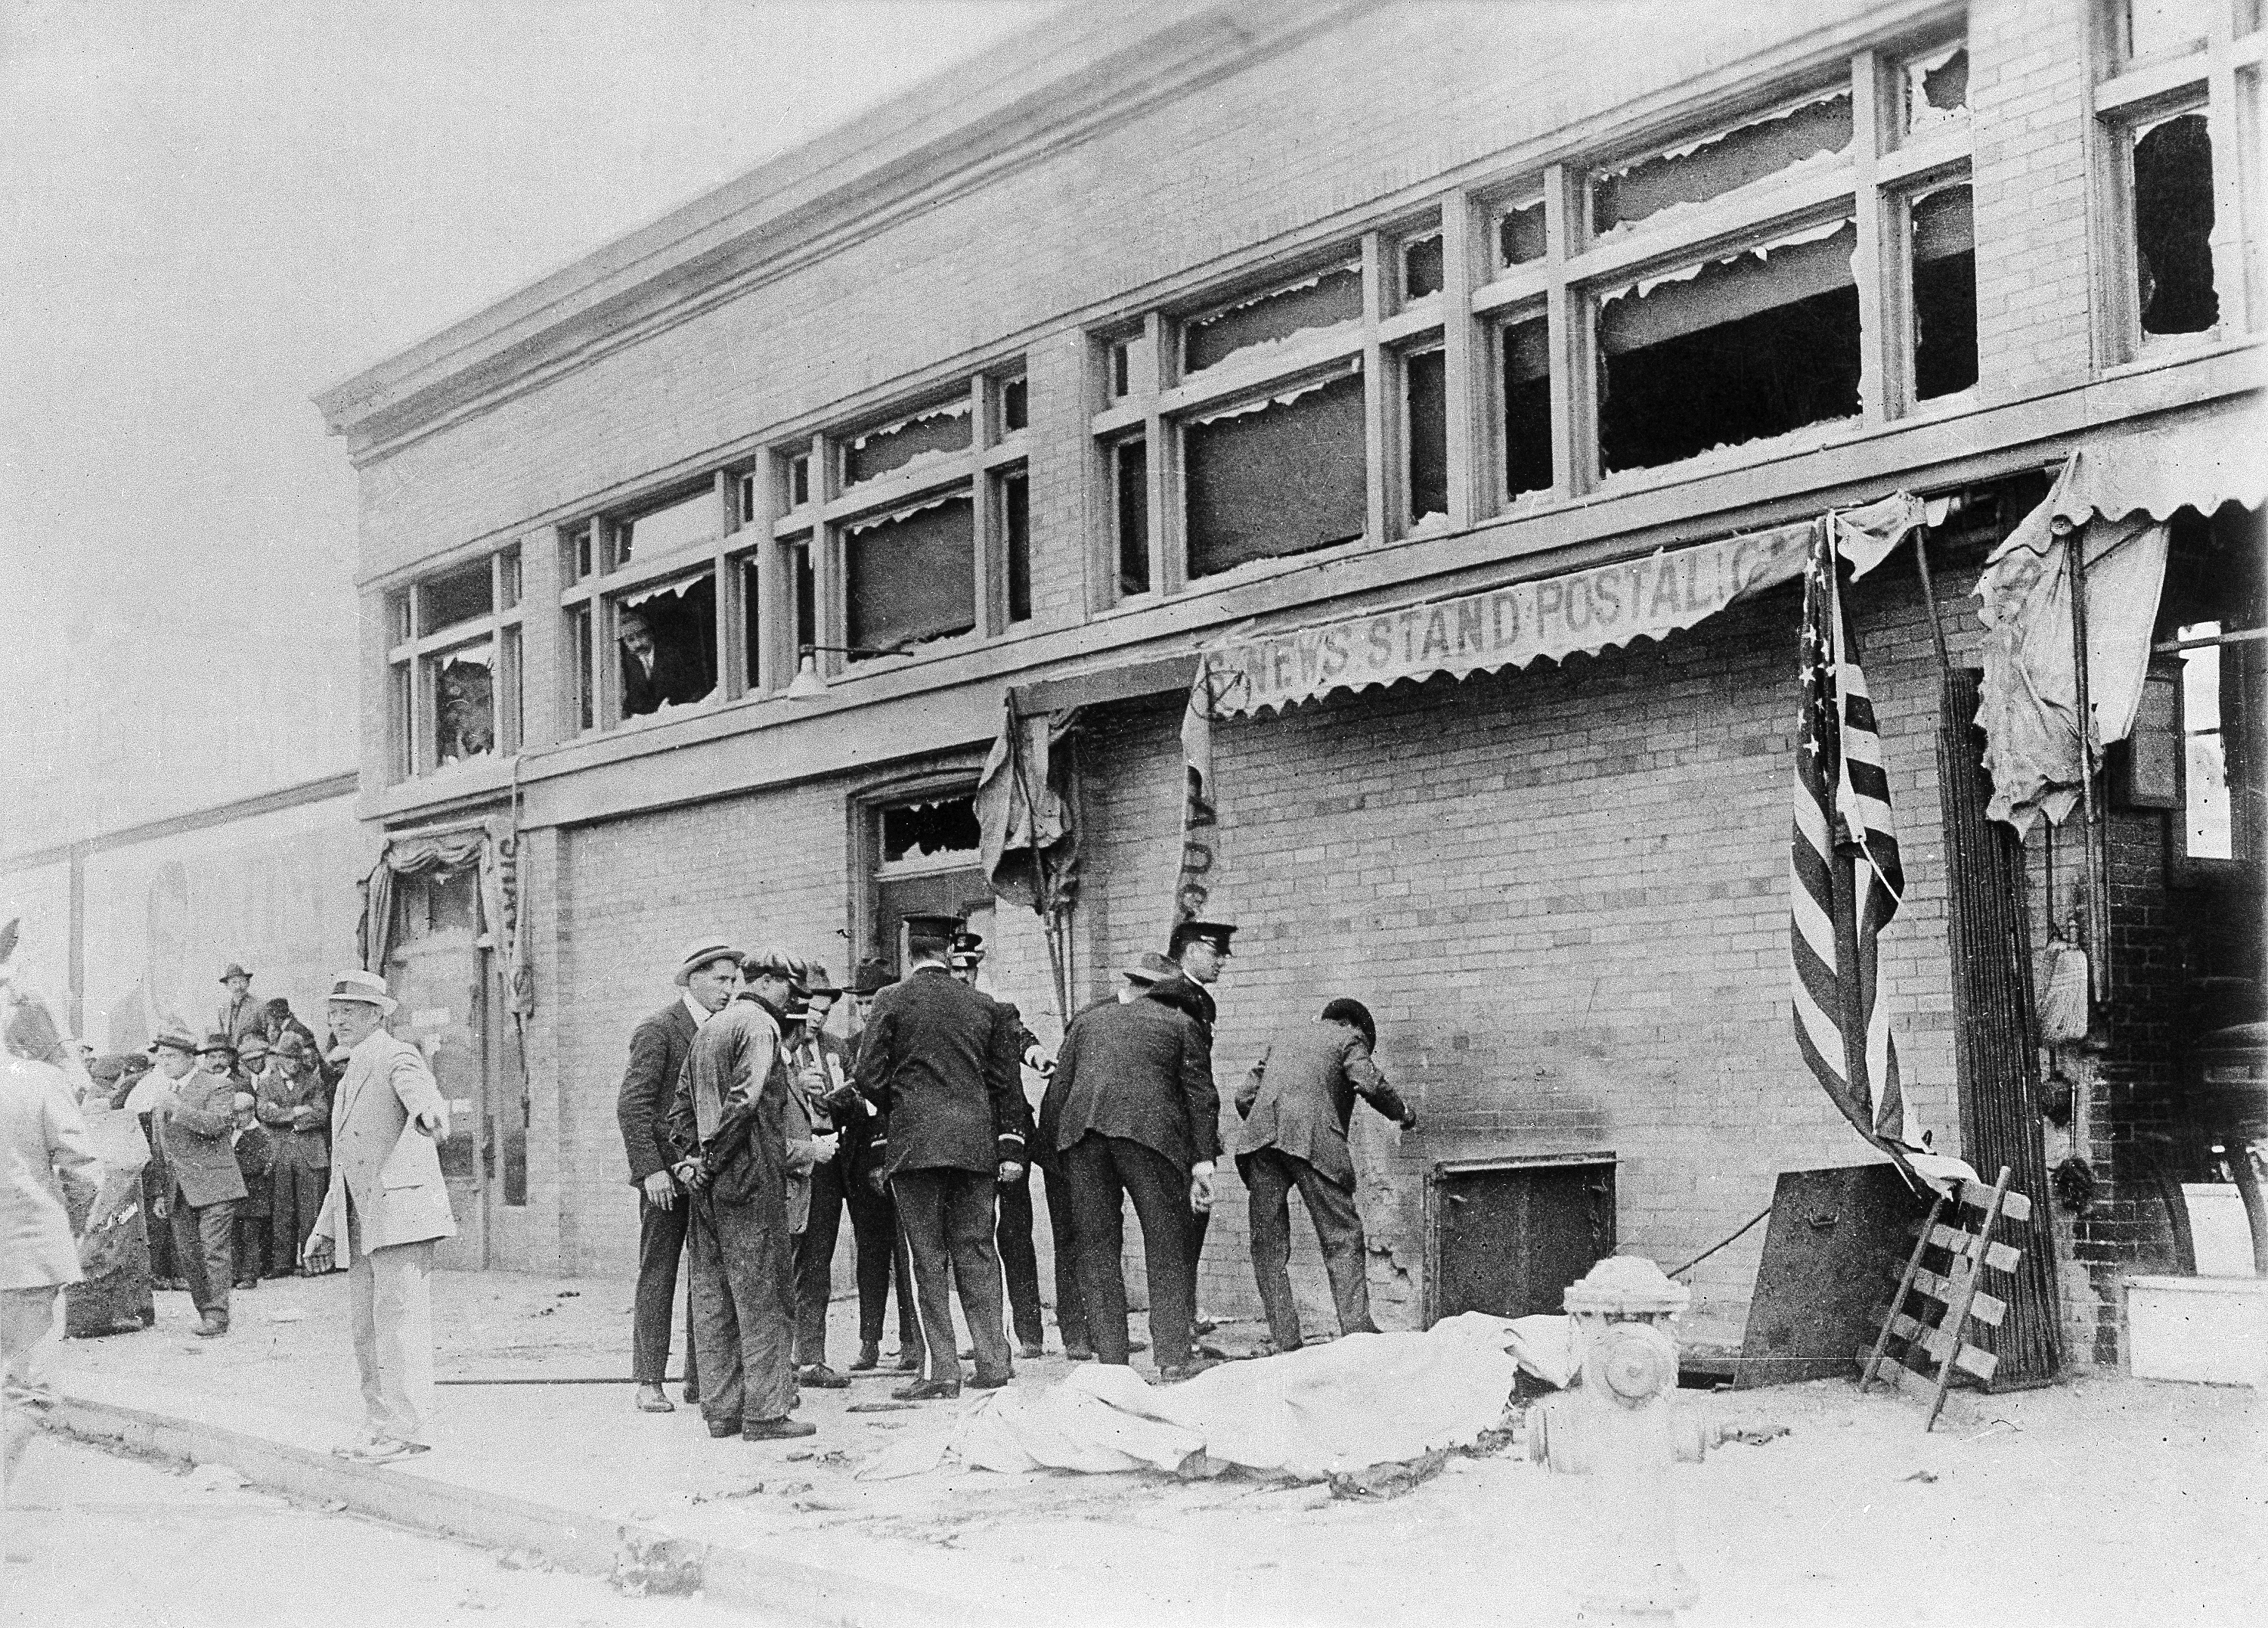 Police and officials inspect the area where a bomb exploded during the Preparedness Day parade in San Francisco, Calif., July 22, 1916.